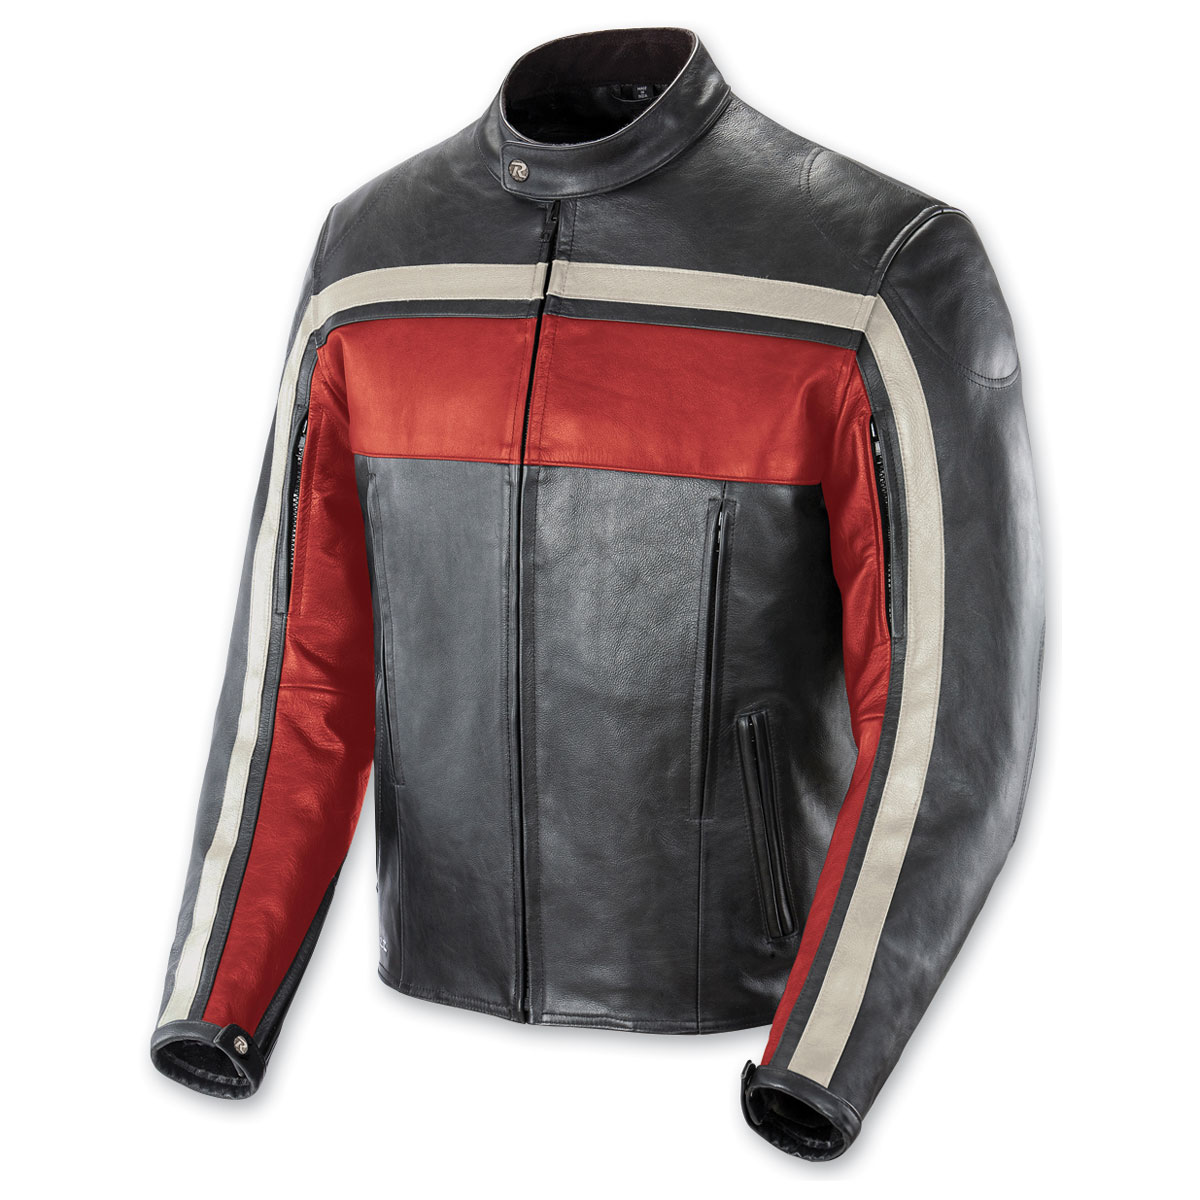 Joe Rocket Men's Old School Red/Black/Ivory Leather Jacket